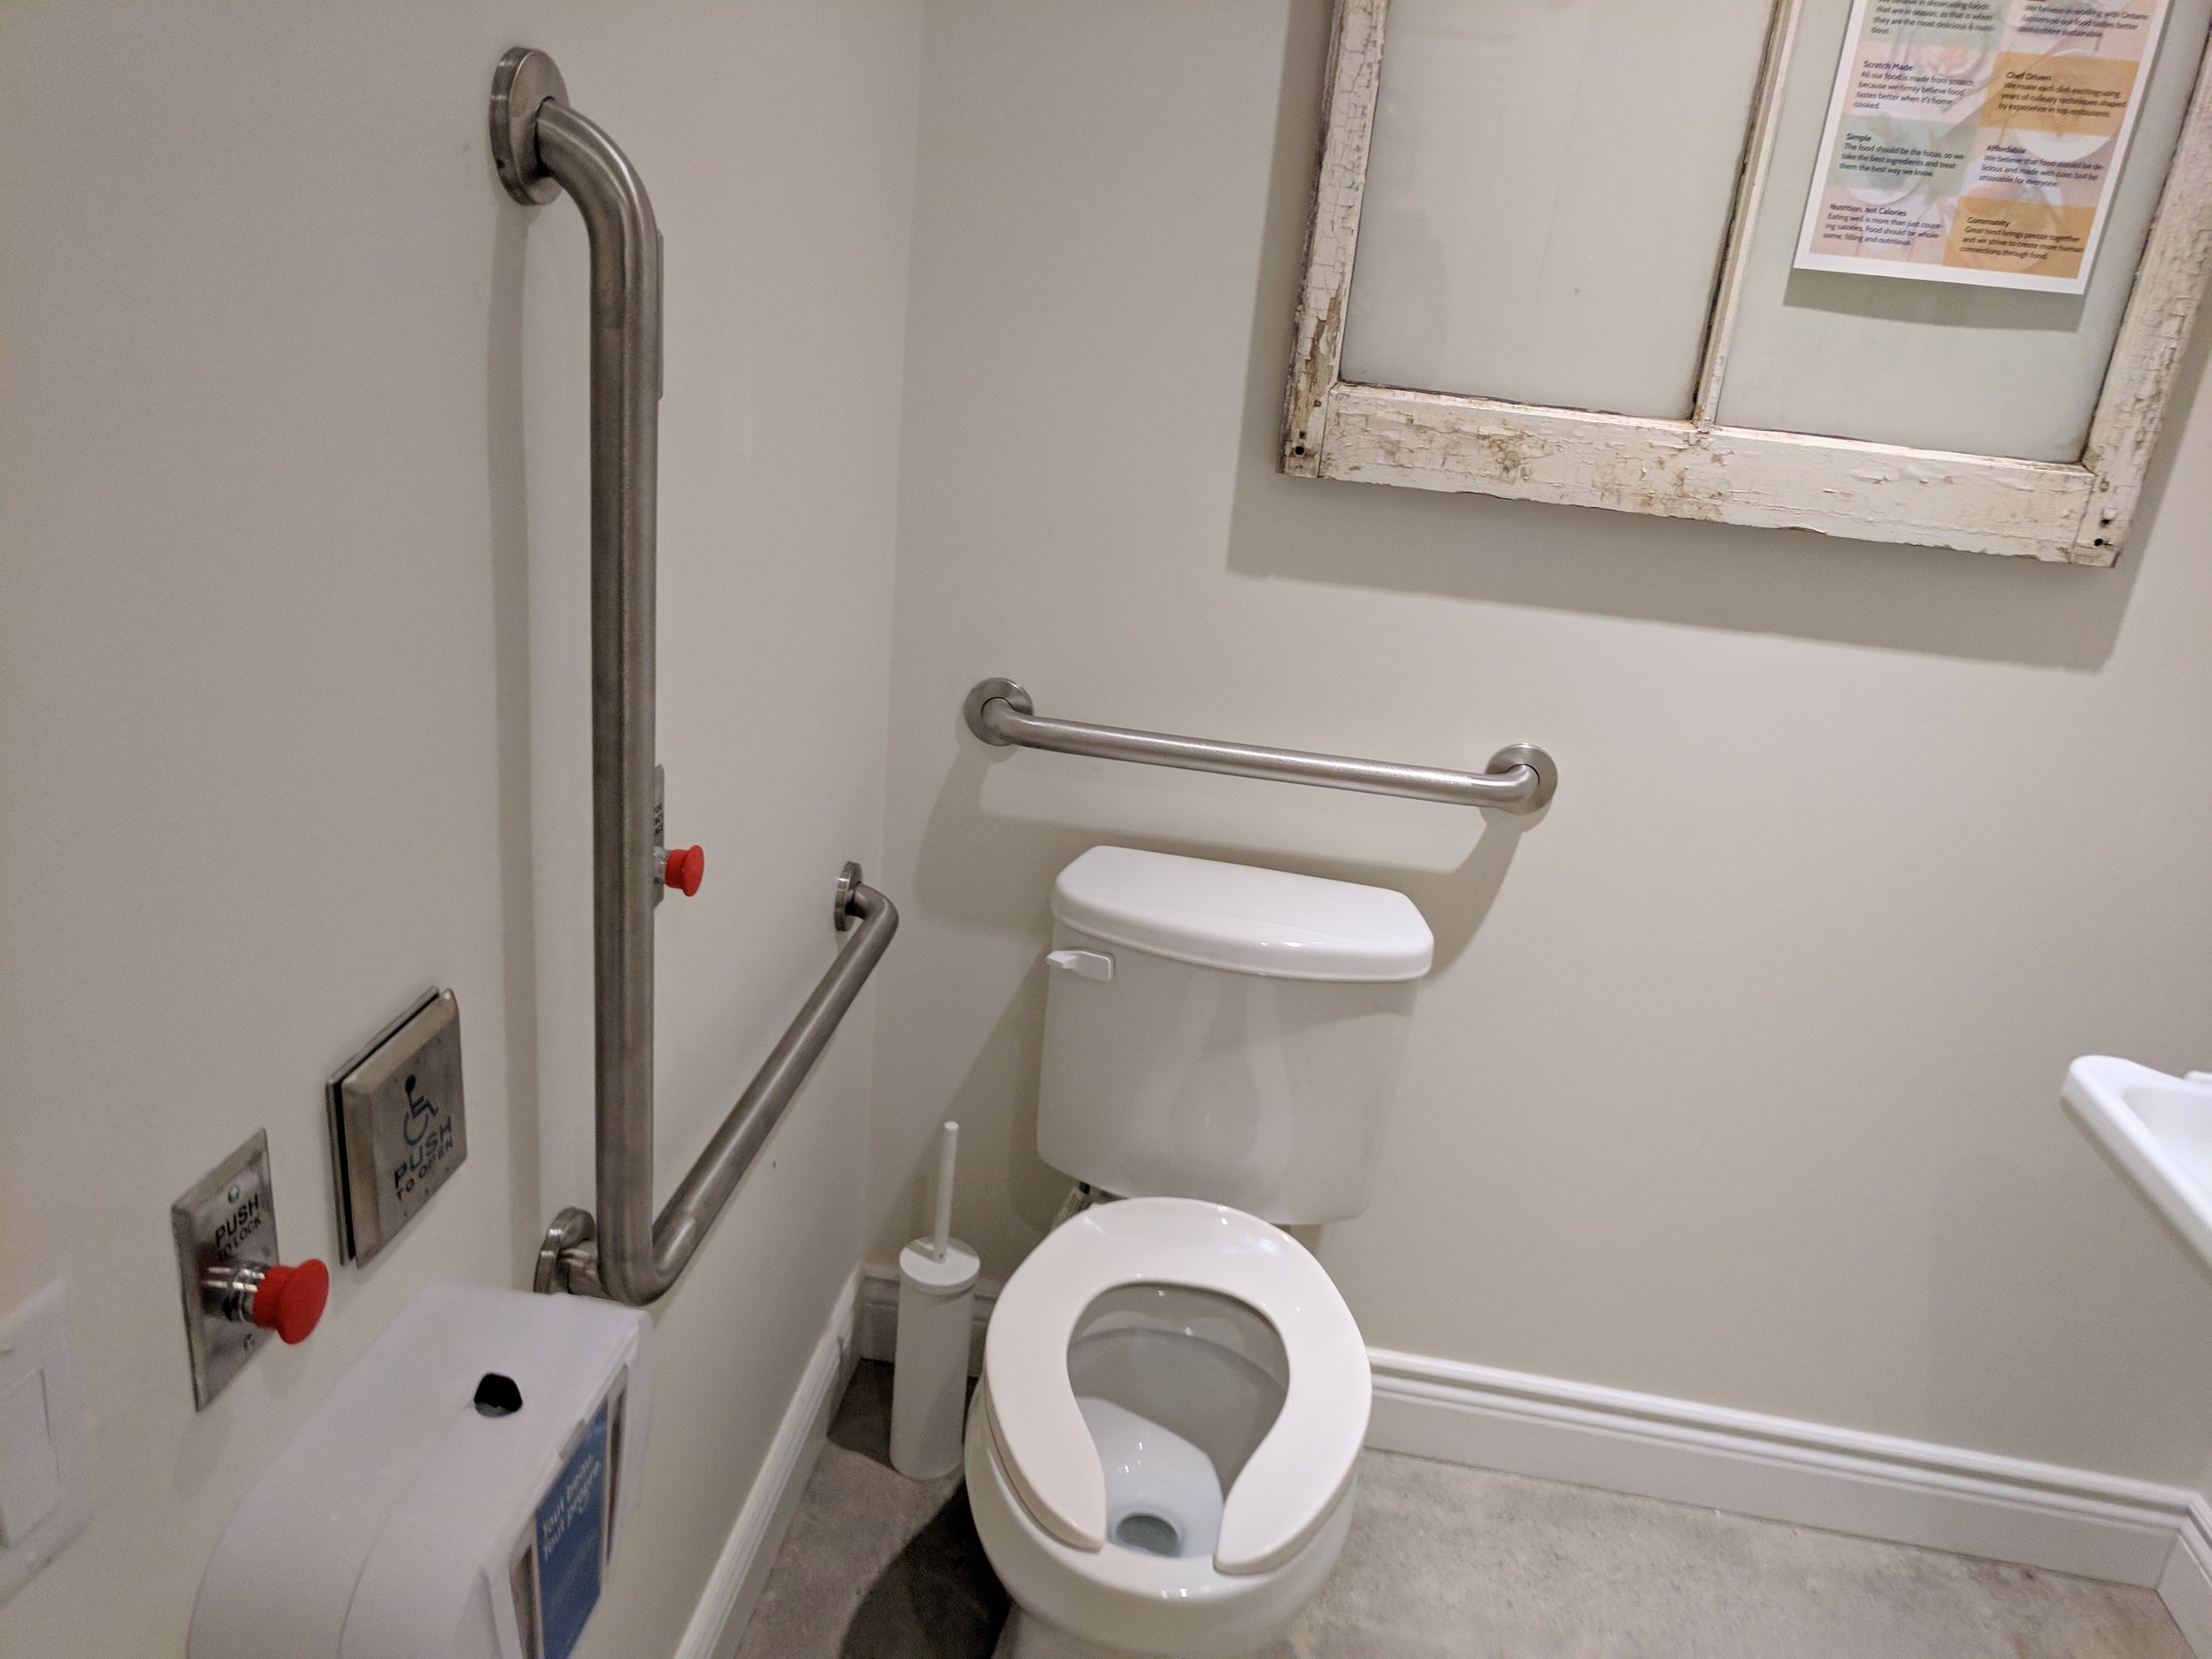 Picture of accessible wahroom